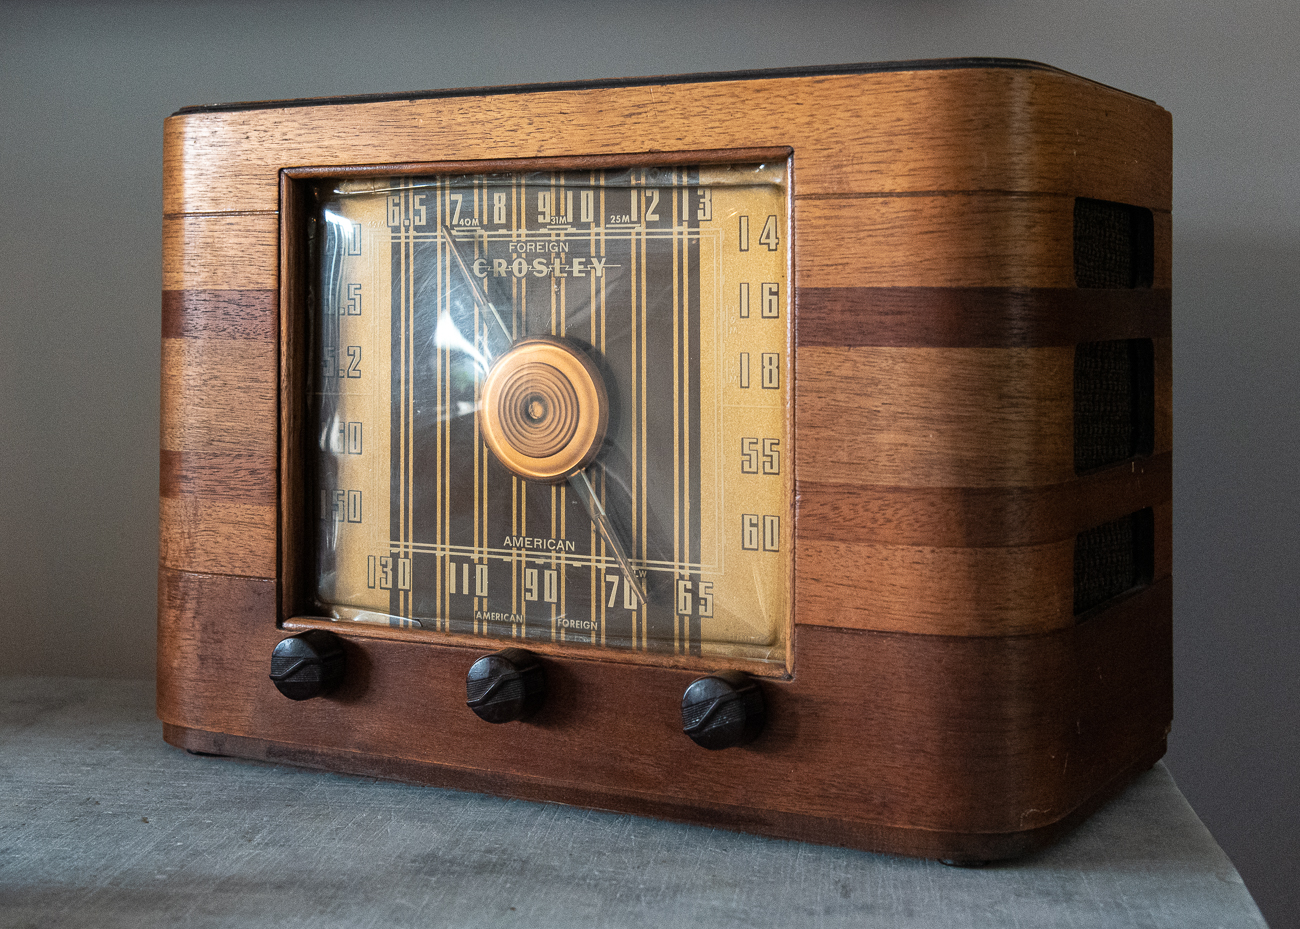 His house is filled with art and artifacts from Cincinnati's past, including things like a painting by a former Rookwood Pottery artist and old jars from Christian Moerlein's brewery. Crosley radios are among his collection. / Image: Phil Armstrong, Cincinnati Refined // Published: 5.31.19